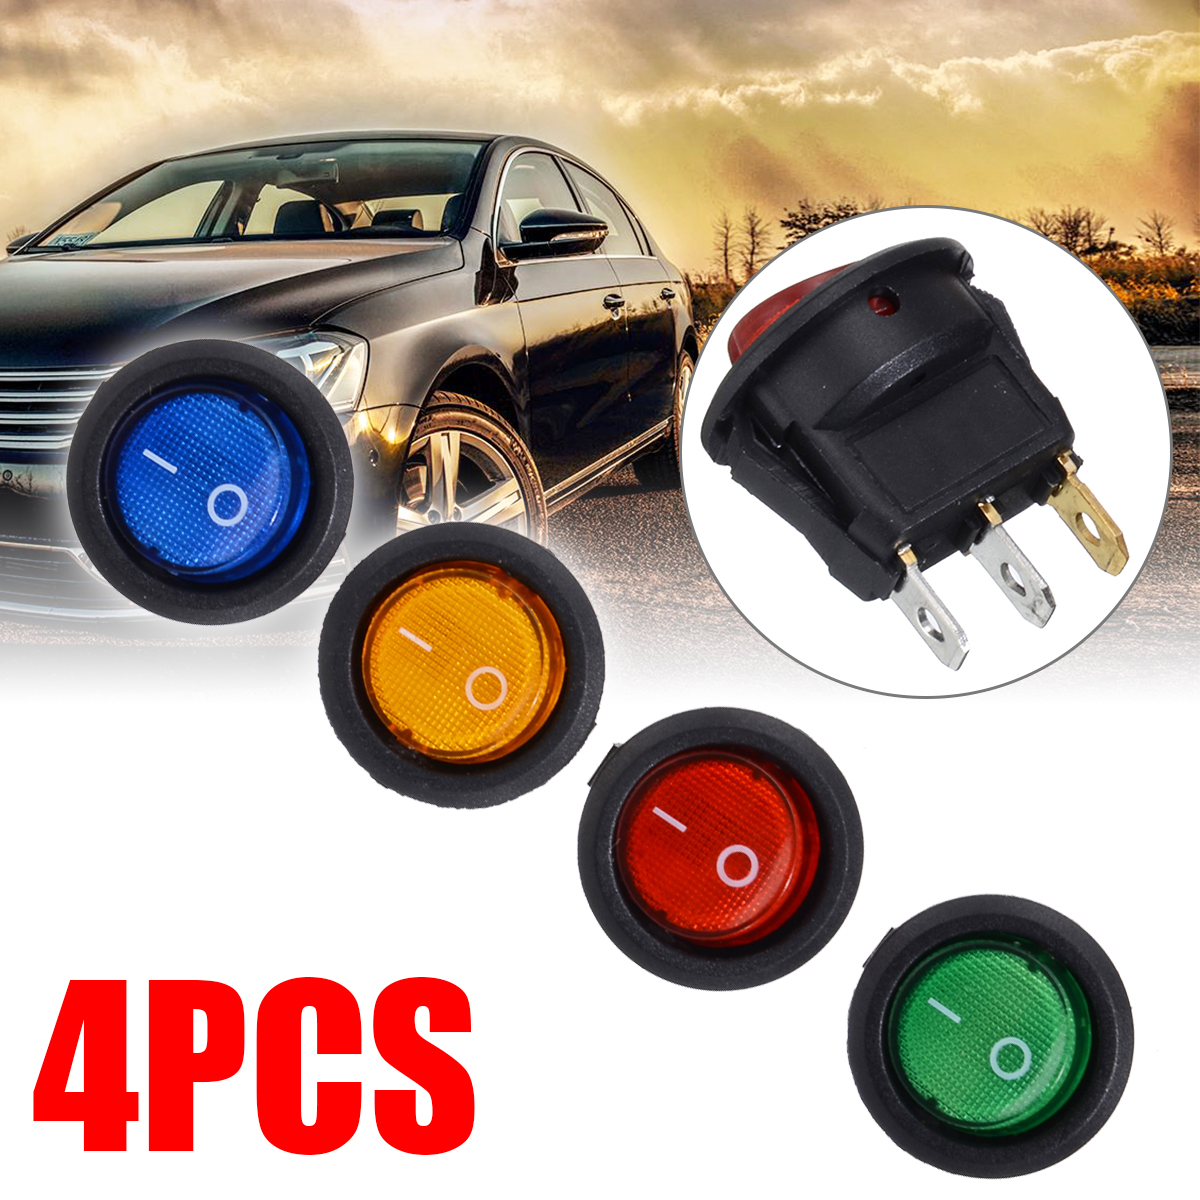 Image 2 - 4Pcs/Set 12V 16A LED Auto Rocker Dot Boat LED Light Toggle Switch Red/Blue/Green/Yellow SPST ON/OFF Top Sales Electric Controls-in Car Switches & Relays from Automobiles & Motorcycles